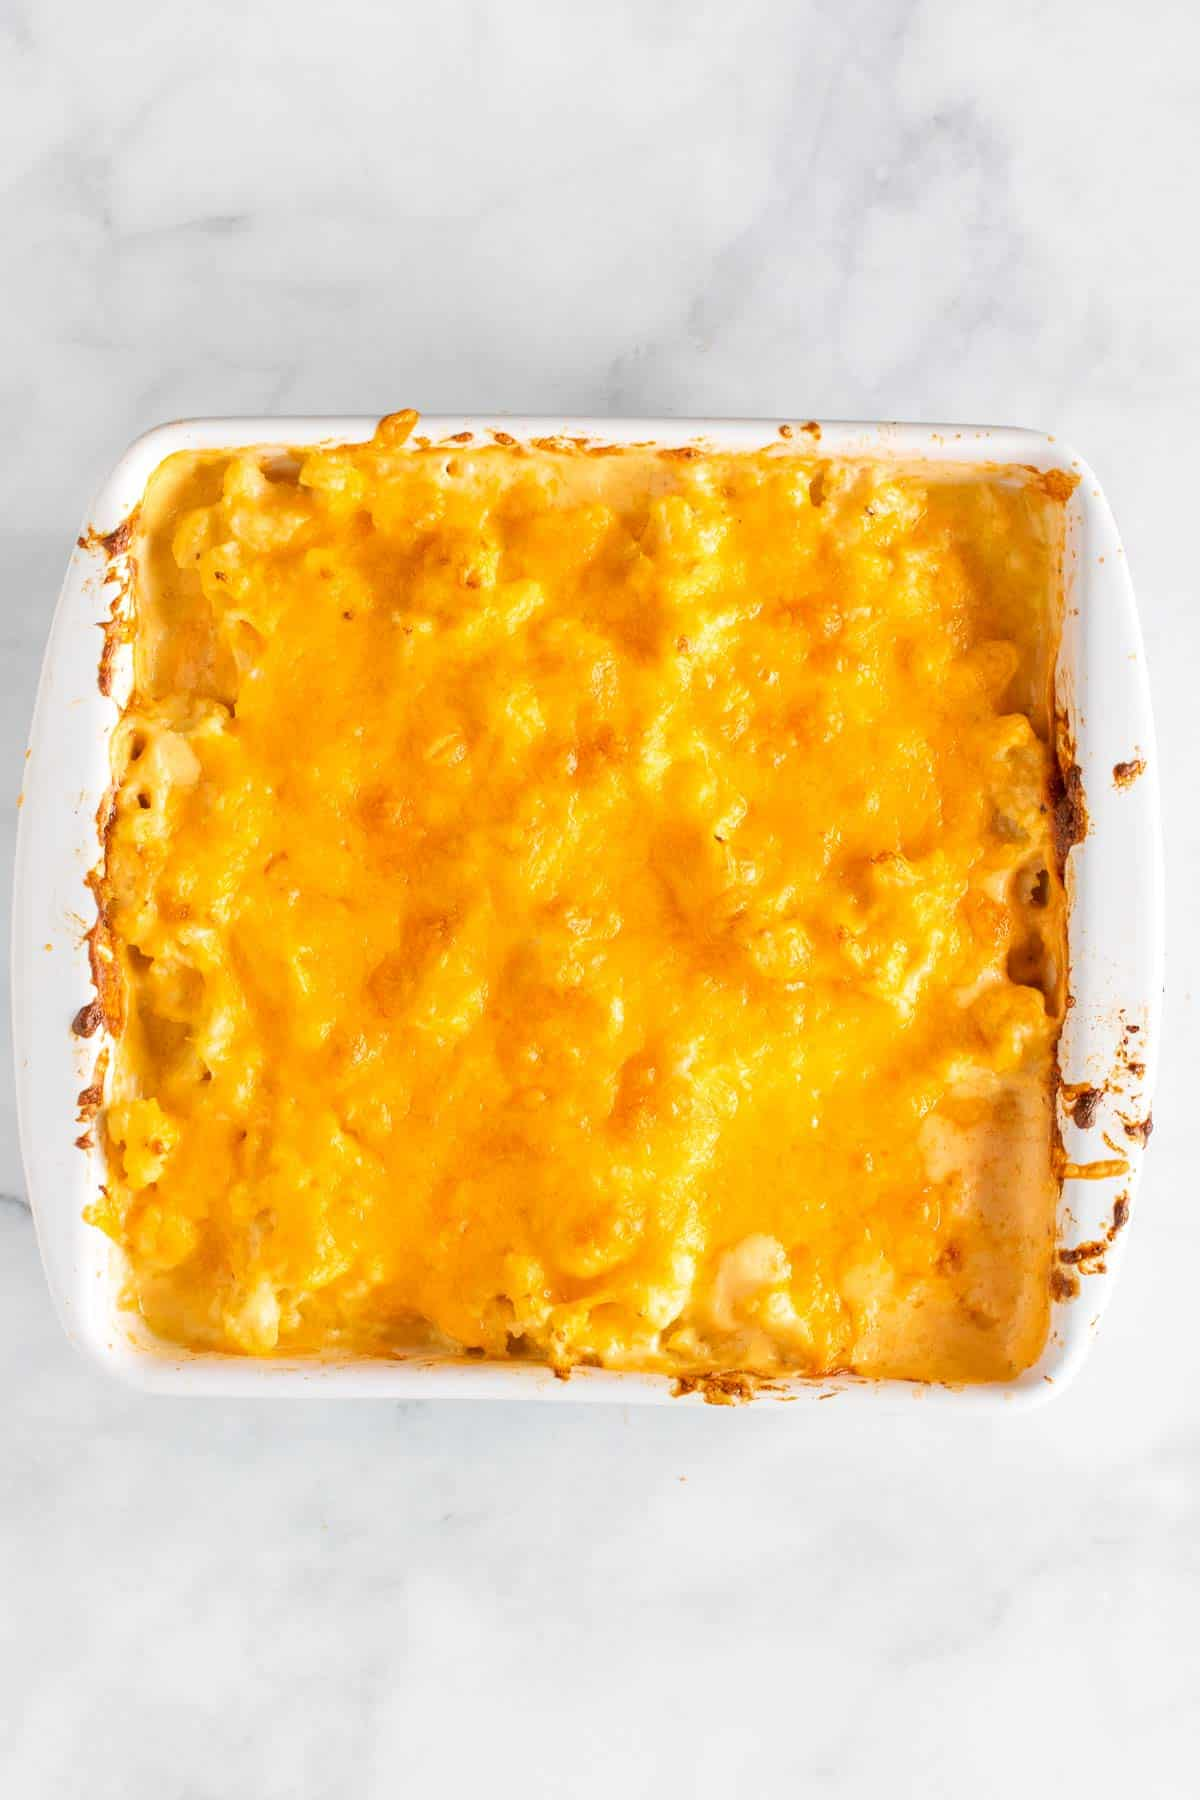 Baked mac and cheese with cauliflower, as seen from above